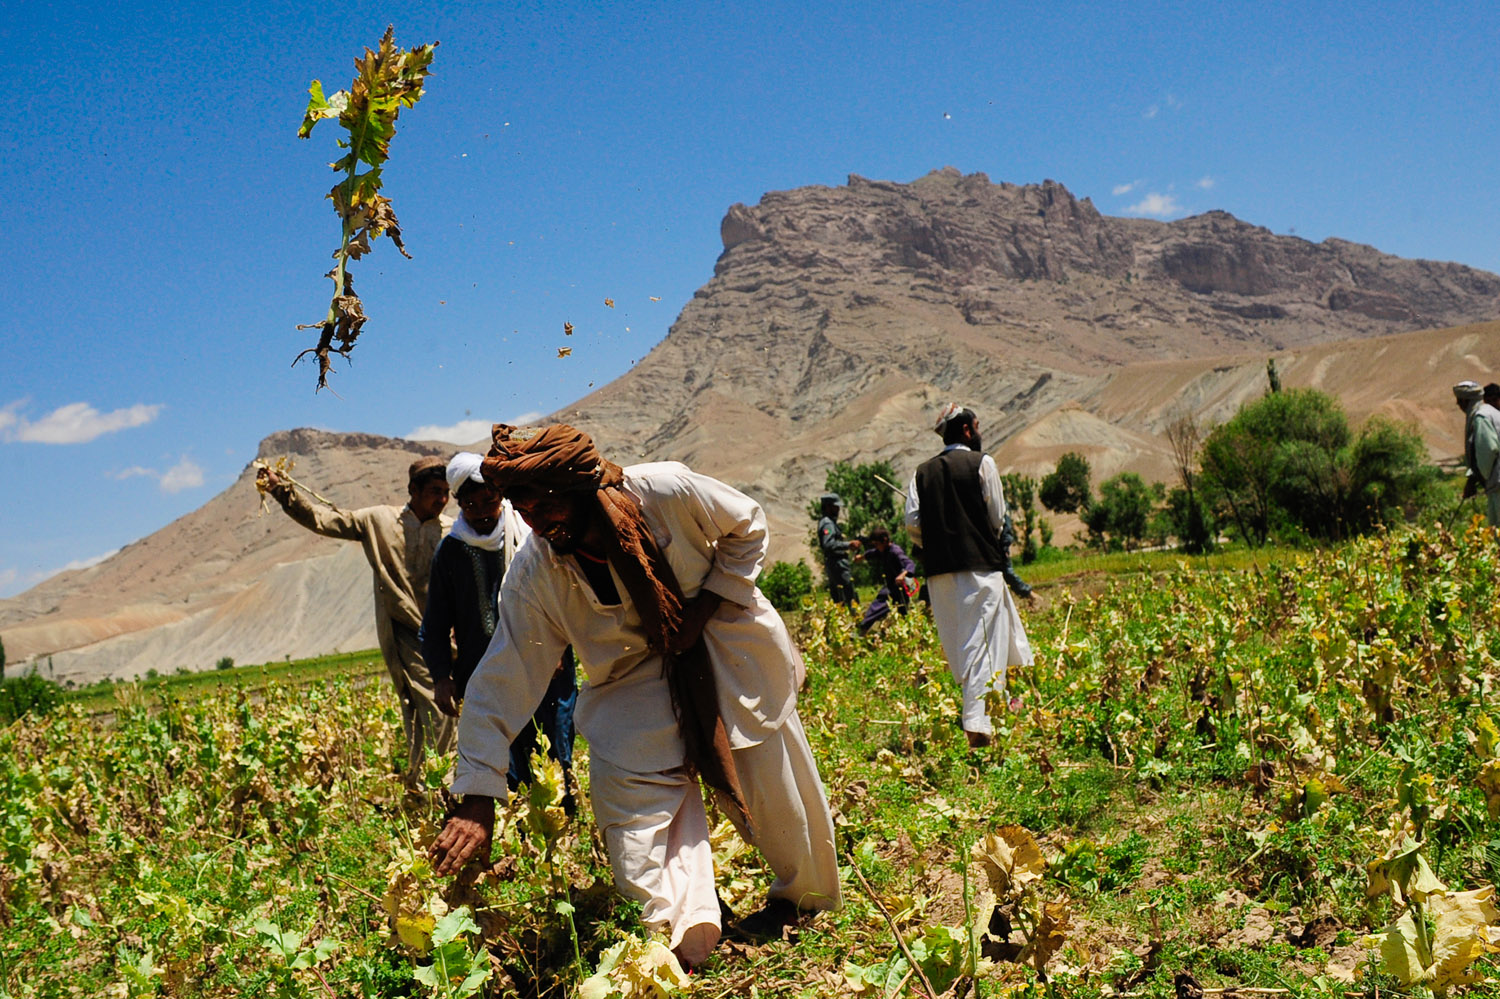 Afghans in Farah Province destroy a poppy field. Poppies are used in the production of opium. By ResoluteSupportMedia.